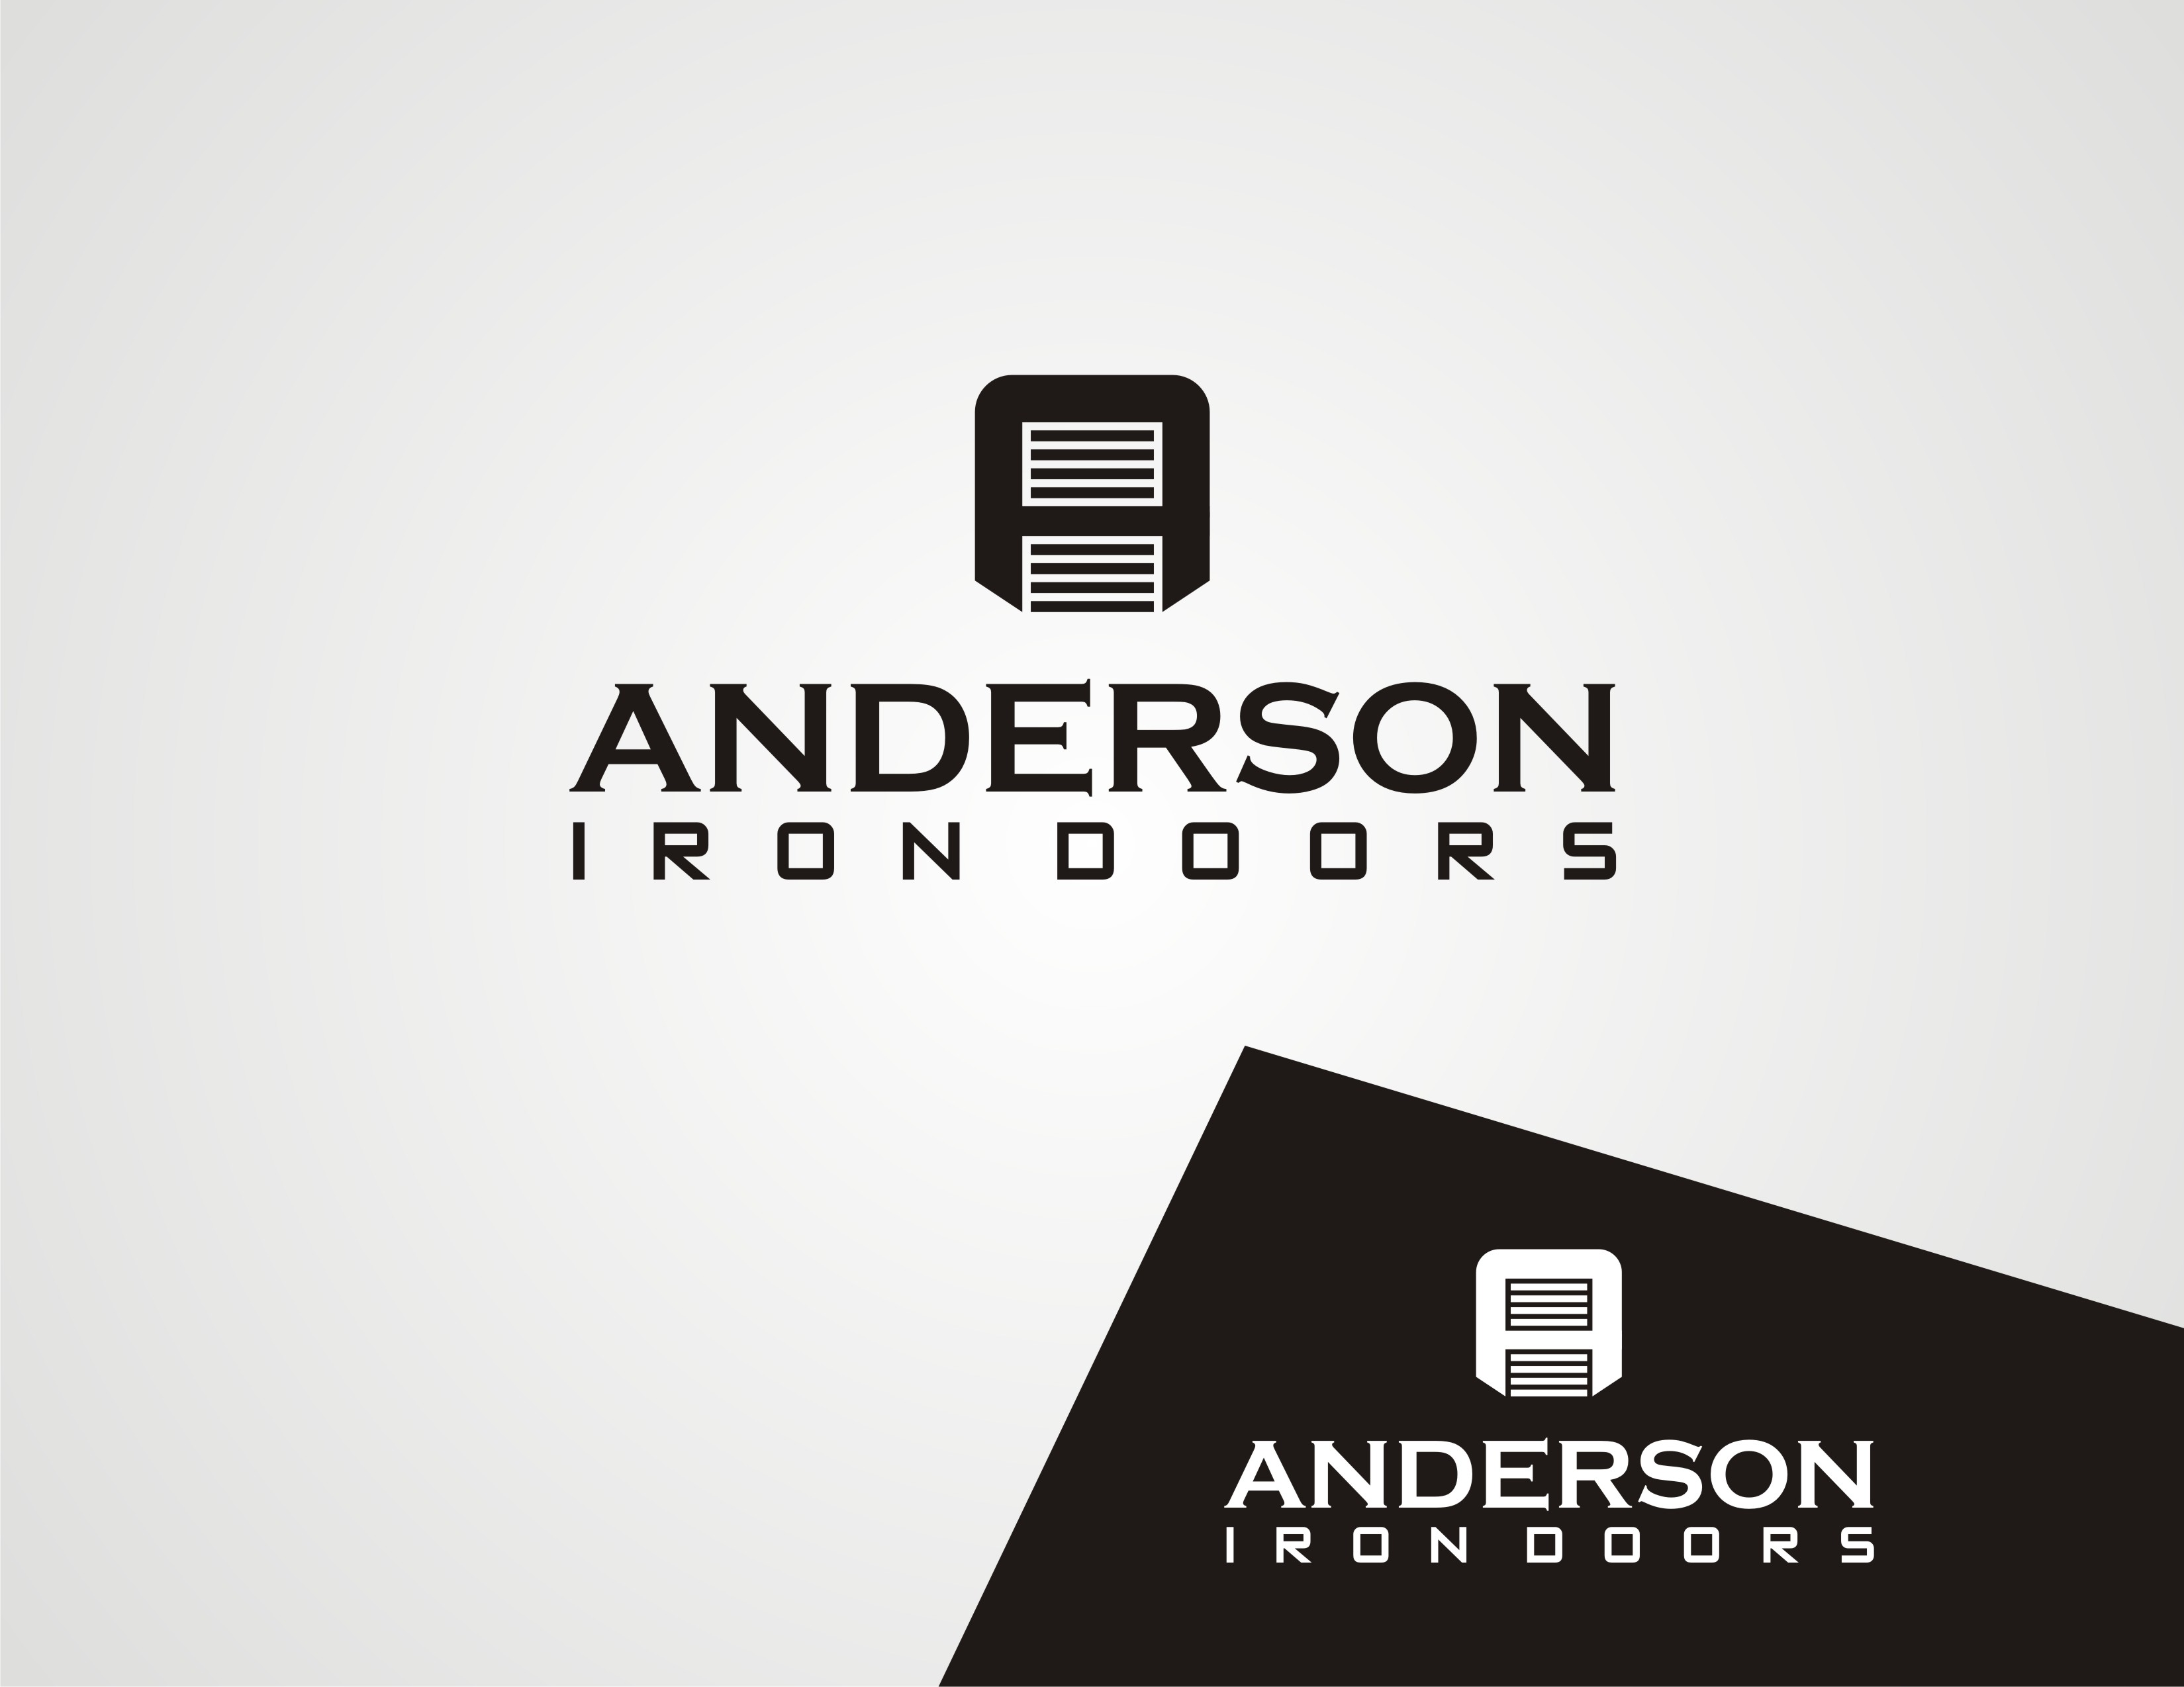 Logo Design by Sourav Sarkar - Entry No. 12 in the Logo Design Contest Artistic Logo Design for Anderson Iron Doors.